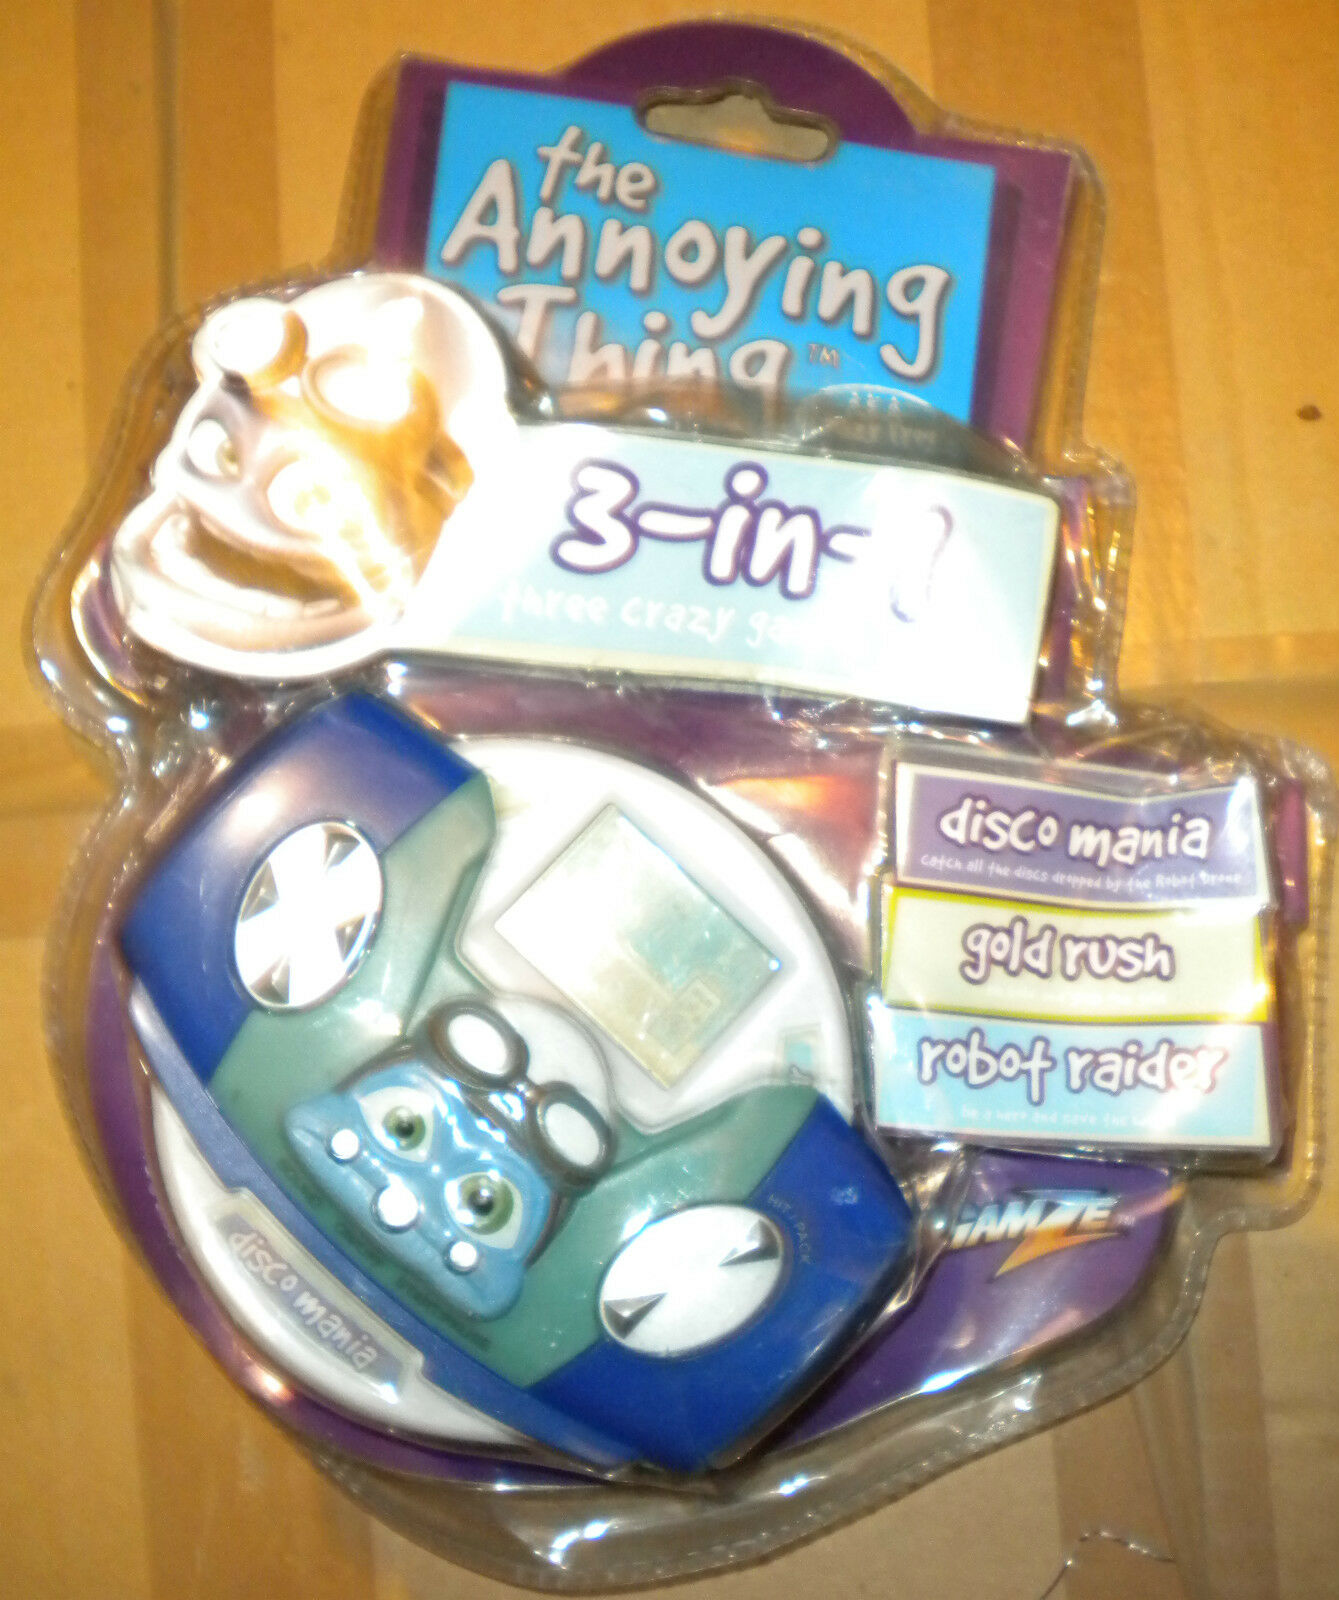 2006 GAMZE THE ANNOYING THING 3 IN 1 ELECTRONIC GAME HAND HELD MOC MINT